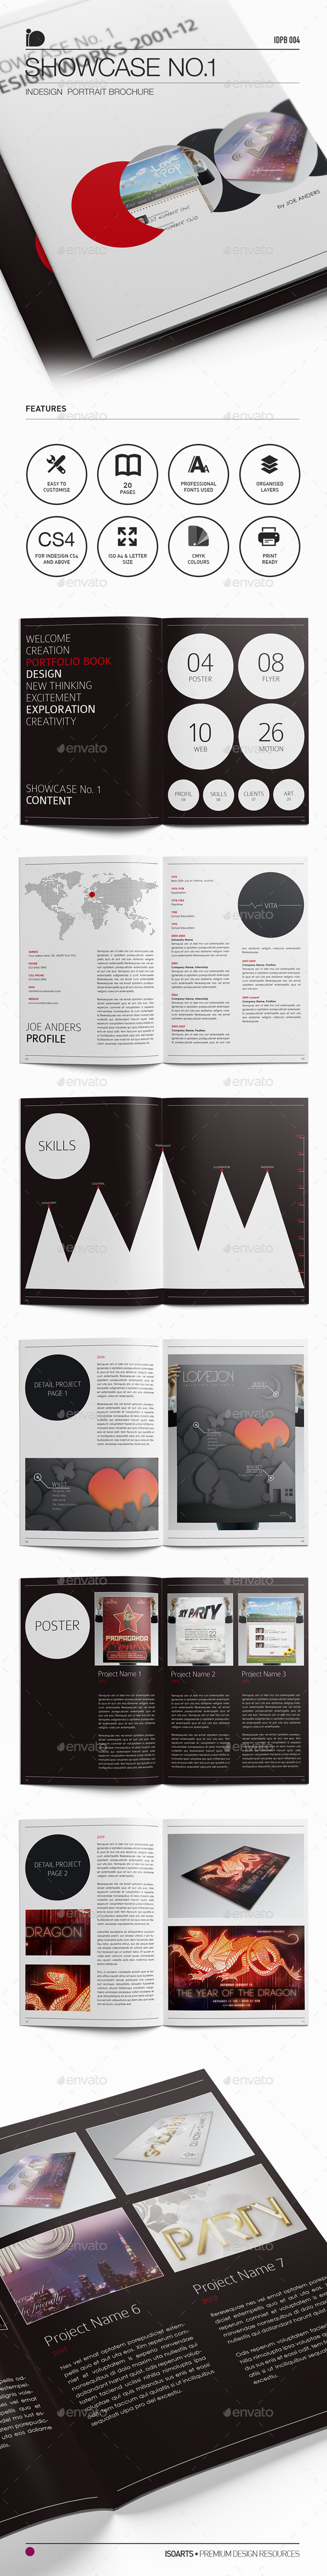 Portrait Brochure • Portfolio Showcase No.1 - Corporate Brochures